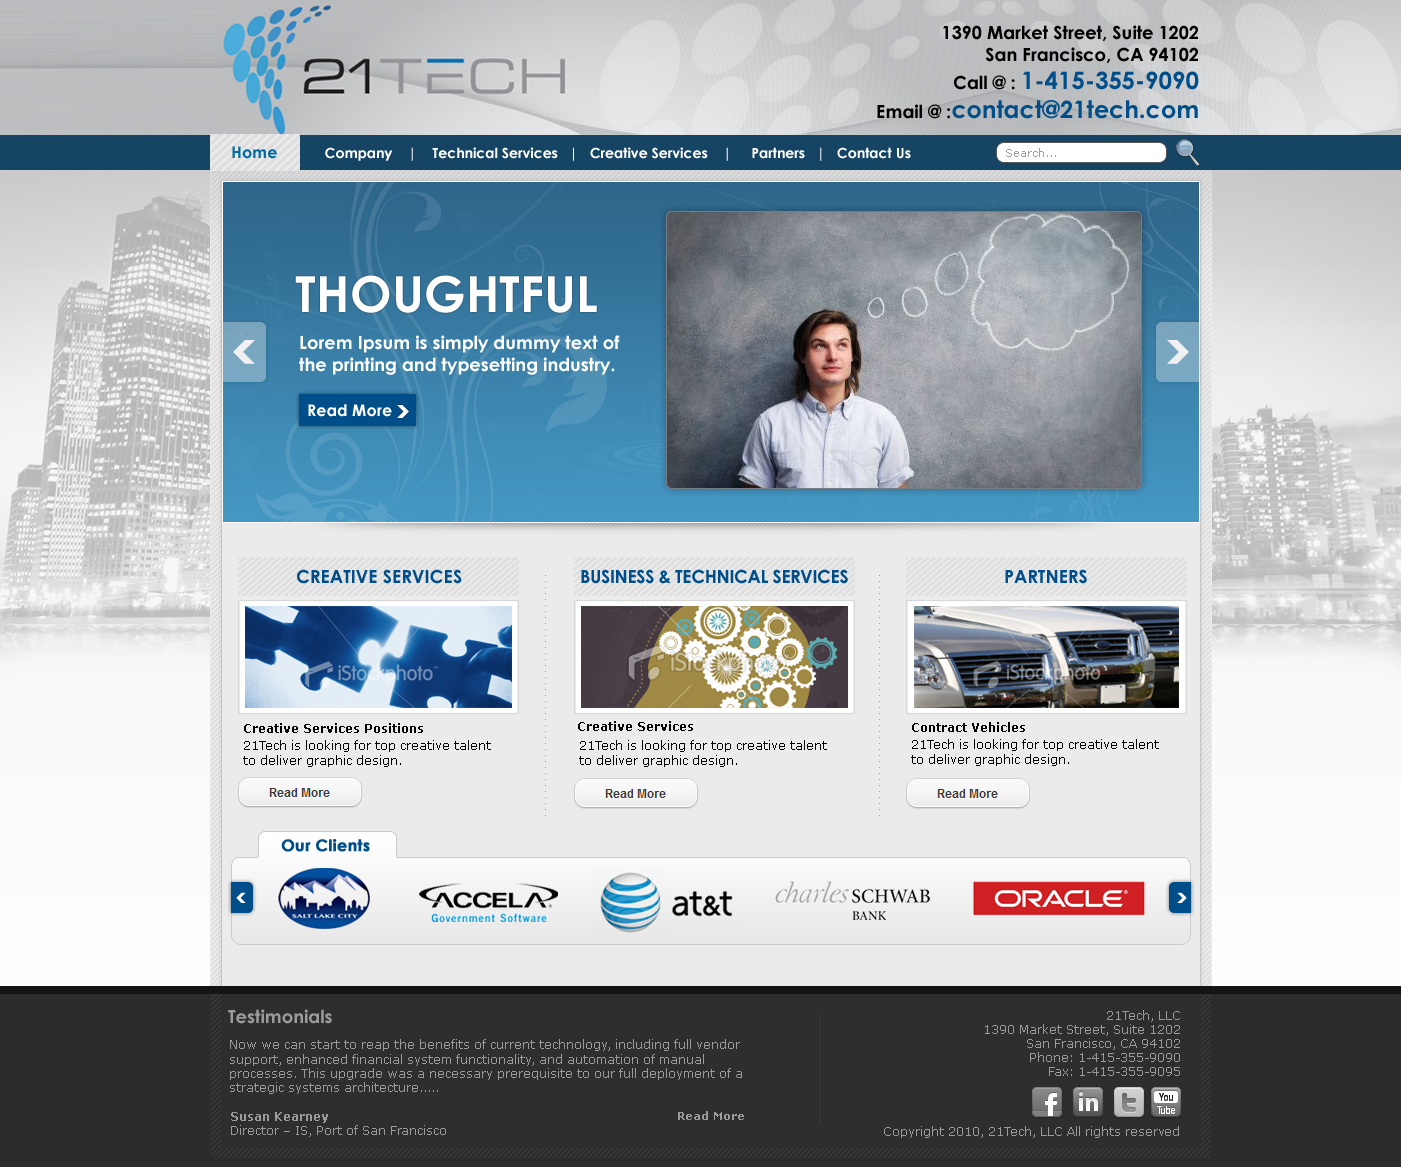 Web Design by Xpiderz for San Francisco Leading Consulting firm - 21Tech Web Design Project - Design #184807